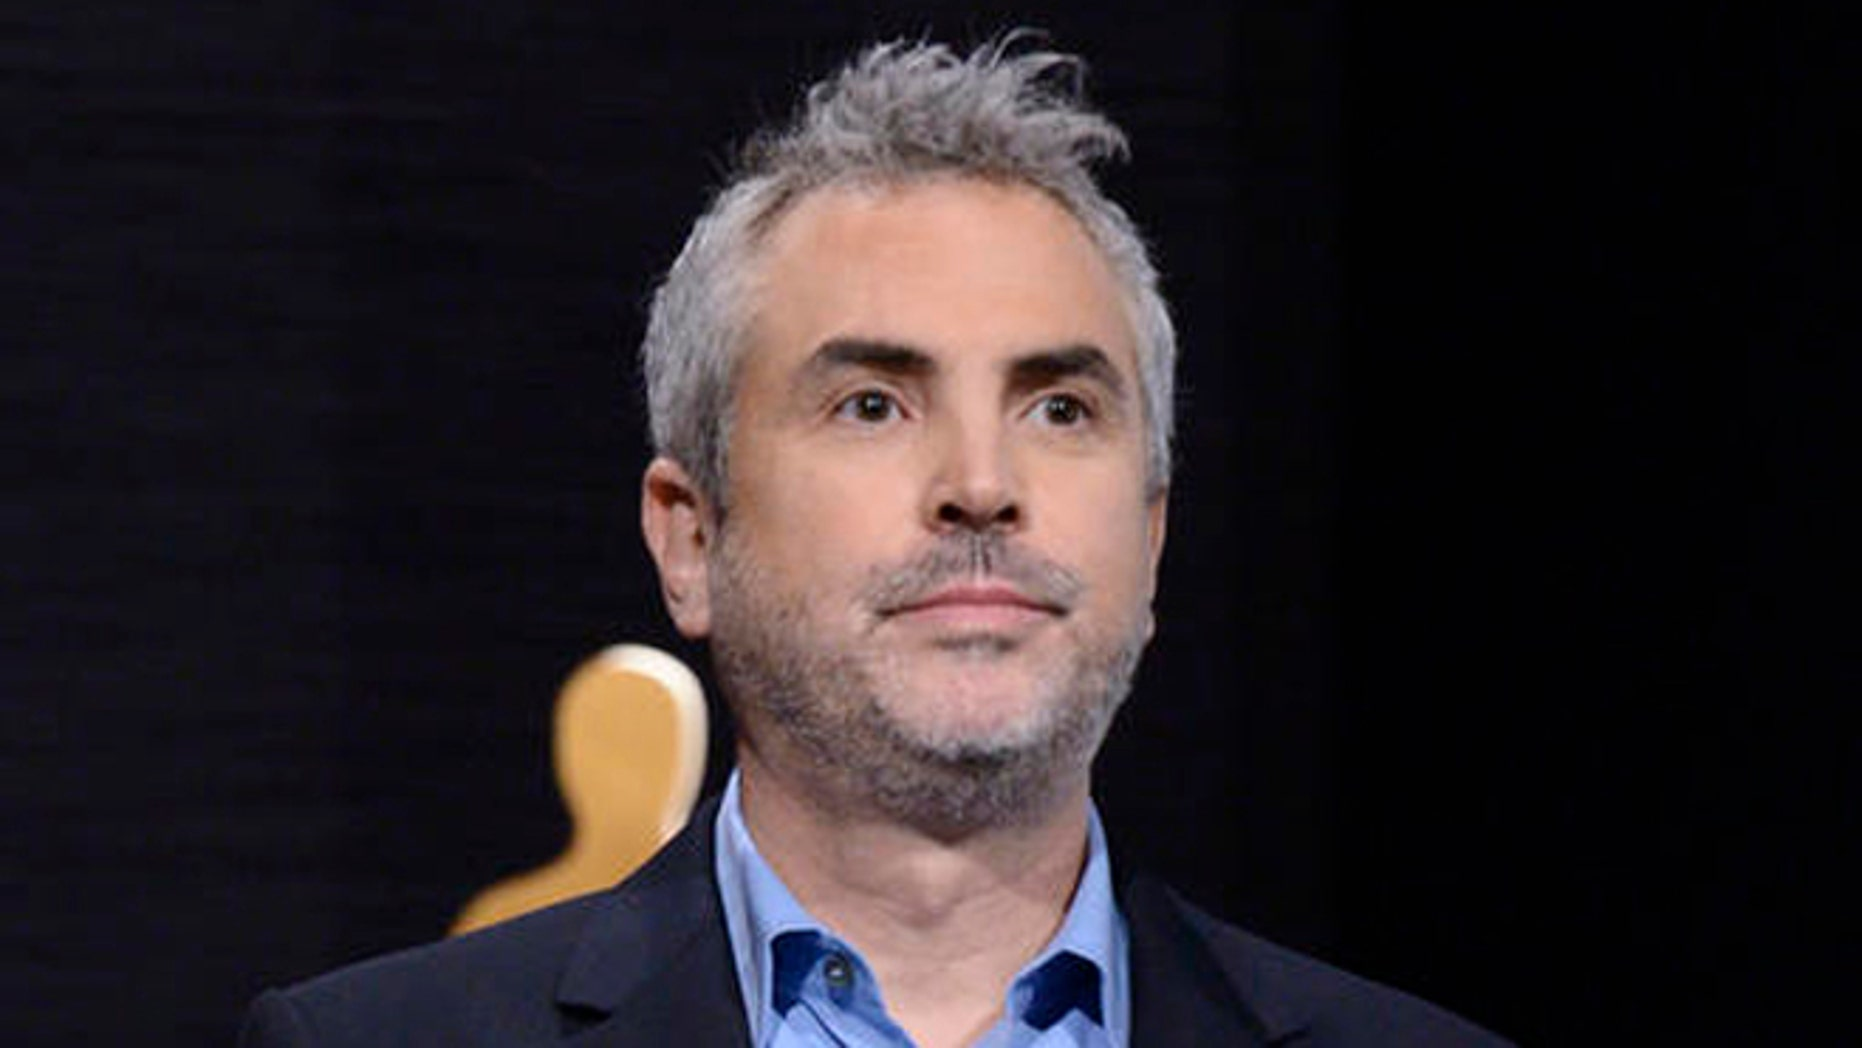 FILE - In this Jan. 15, 2015 file photo, Alfonso Cuaron announces the Academy Awards nominations at the 87th Academy Awards nomination ceremony in Beverly Hills, Calif.  Cuaron's new project will take on a year in the life of a middle class family in Mexico City in the early 1970s.  It will be his first film since Gravity which won seven Oscars in 2014, including Best Director. (Photo by Dan Steinberg/Invision/AP, File)